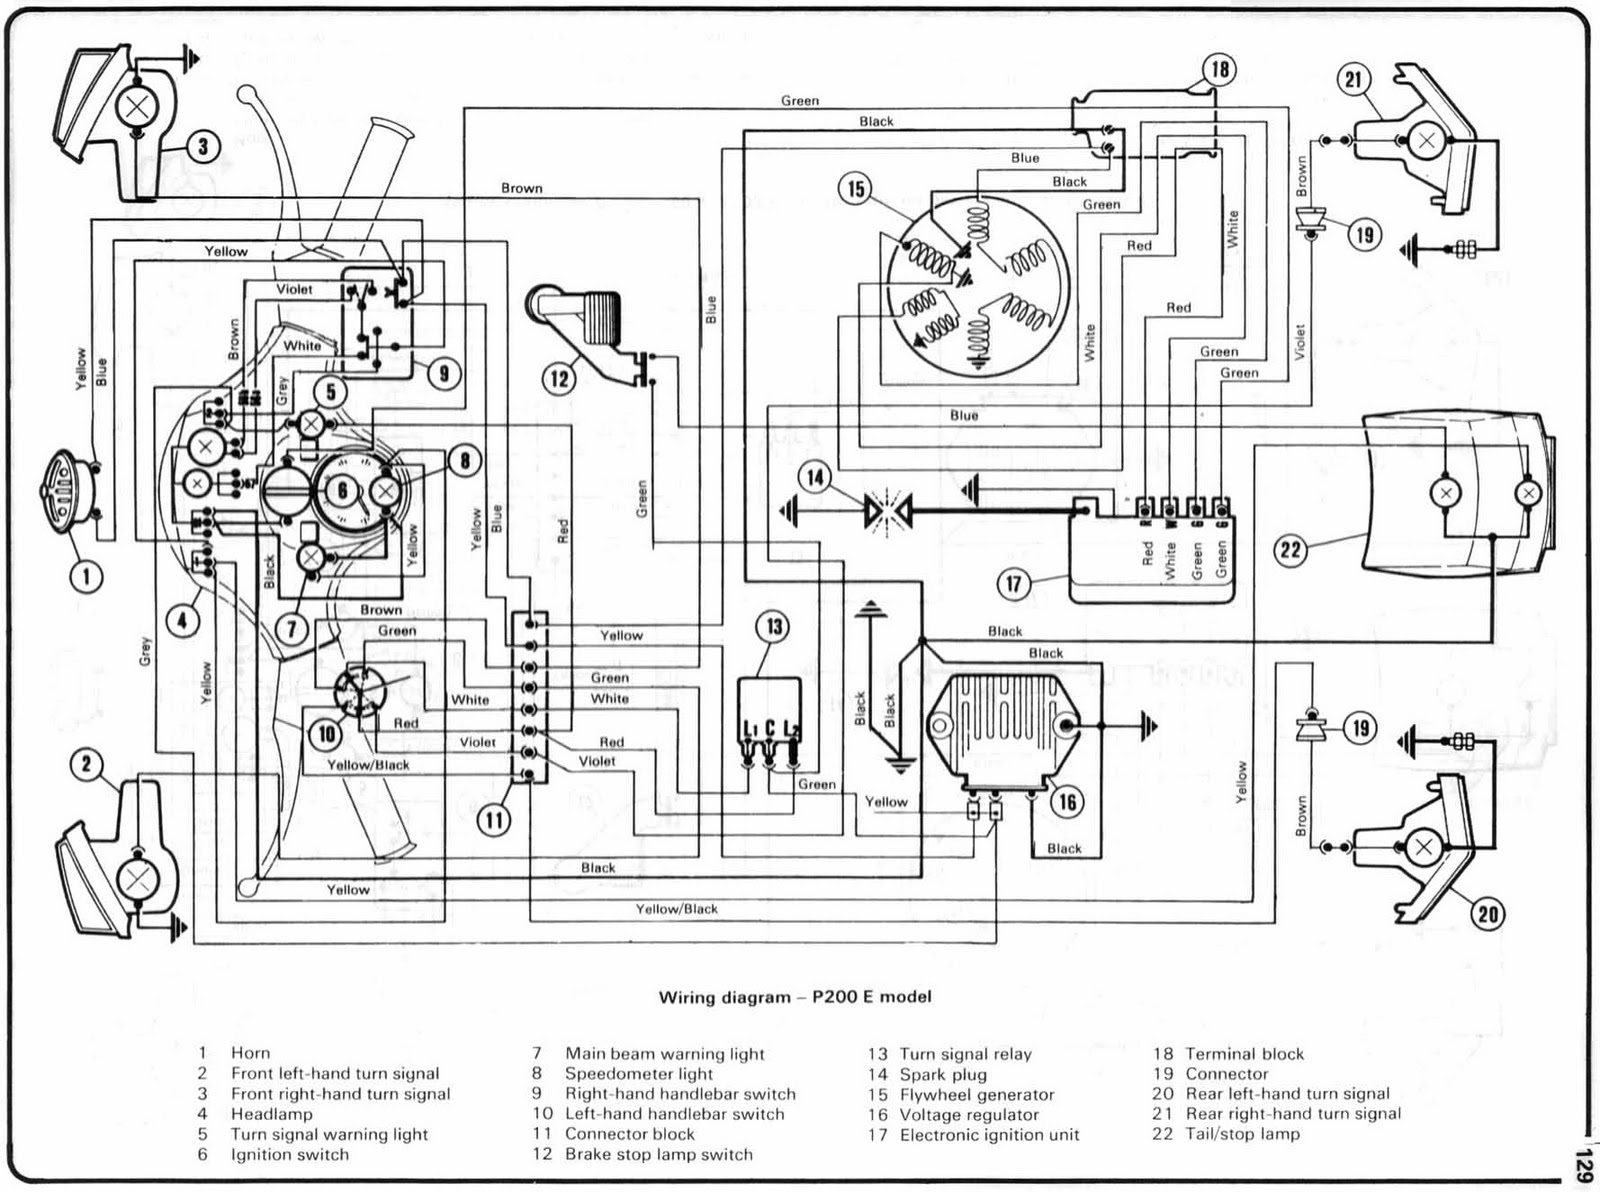 p200 wiring diagram